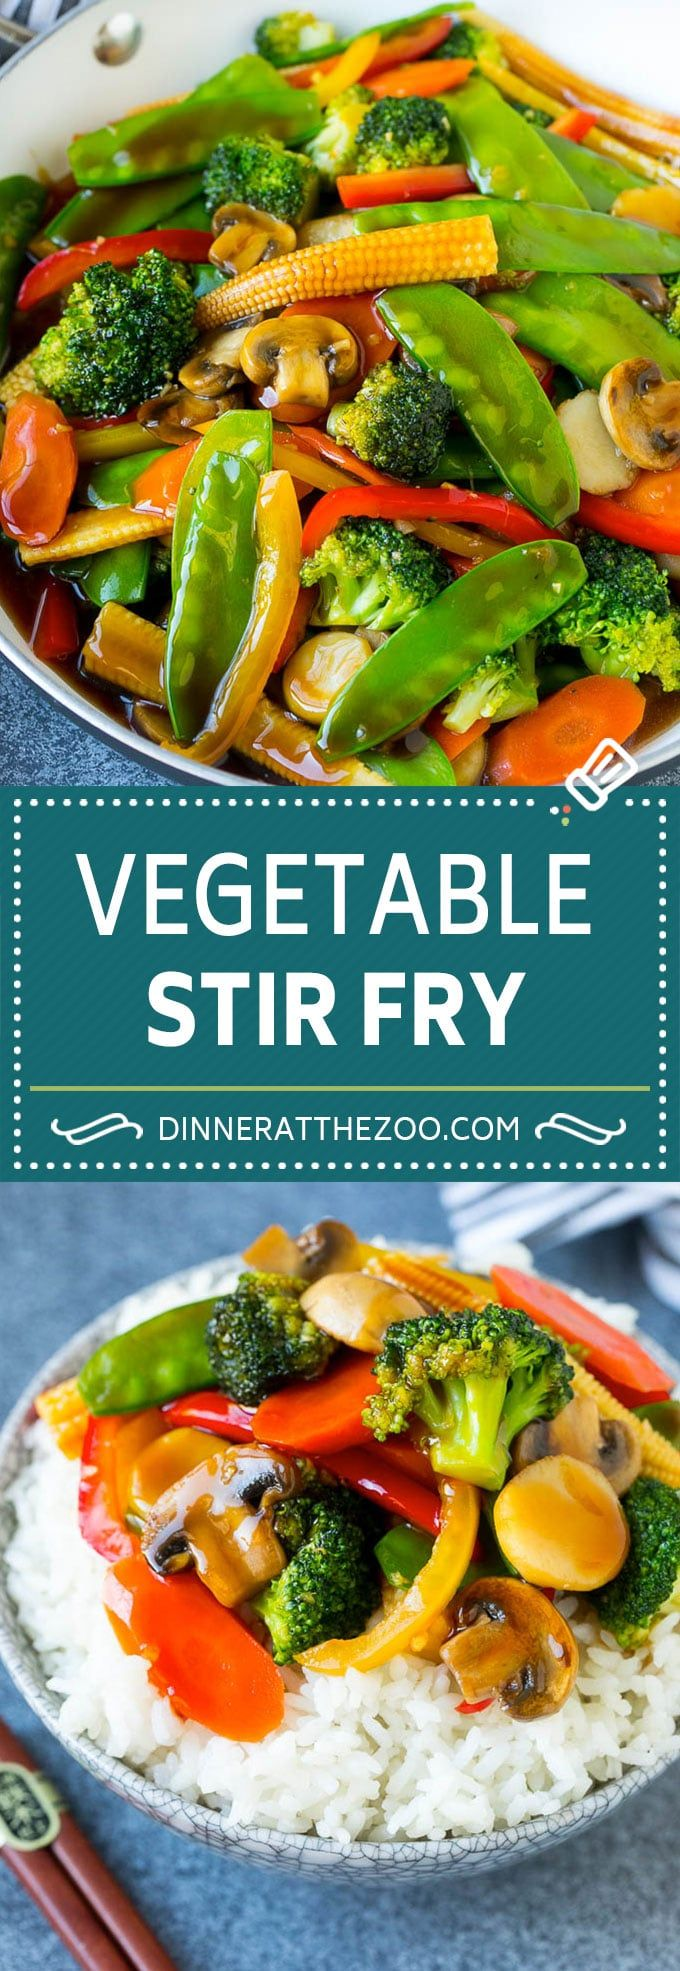 Vegetable Stir Fry - Dinner at the Zoo